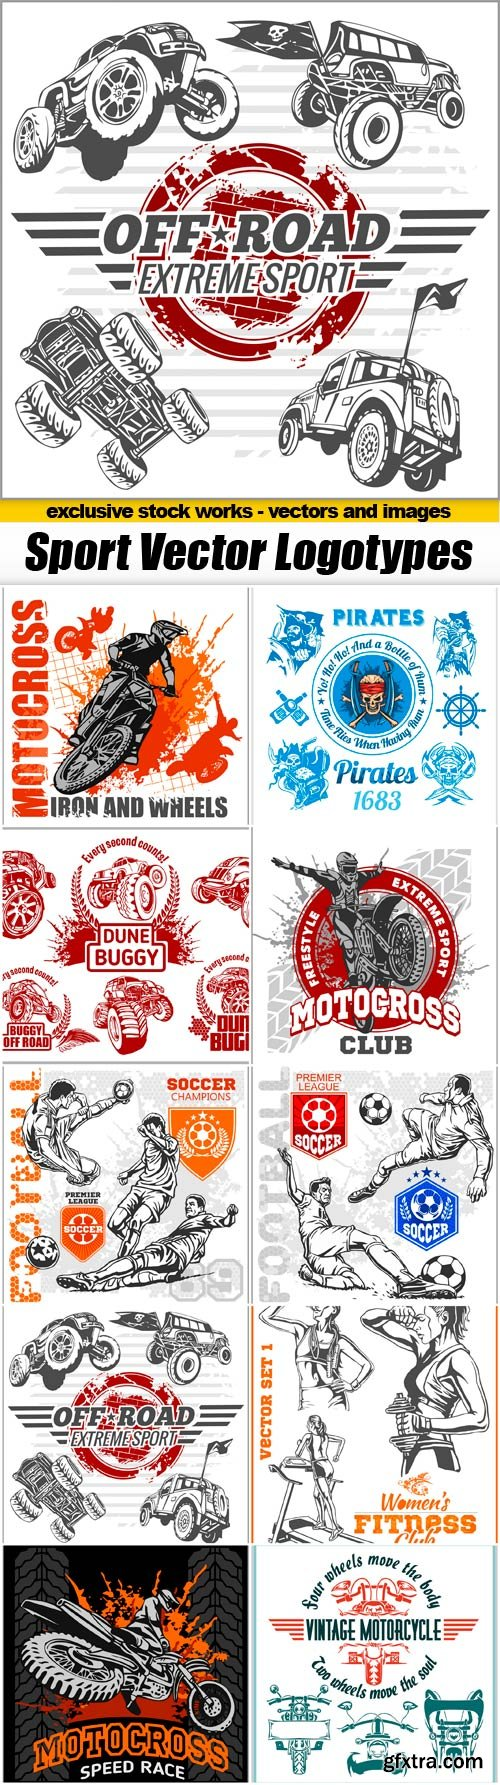 Sport Vector Logotypes - 10 EPS